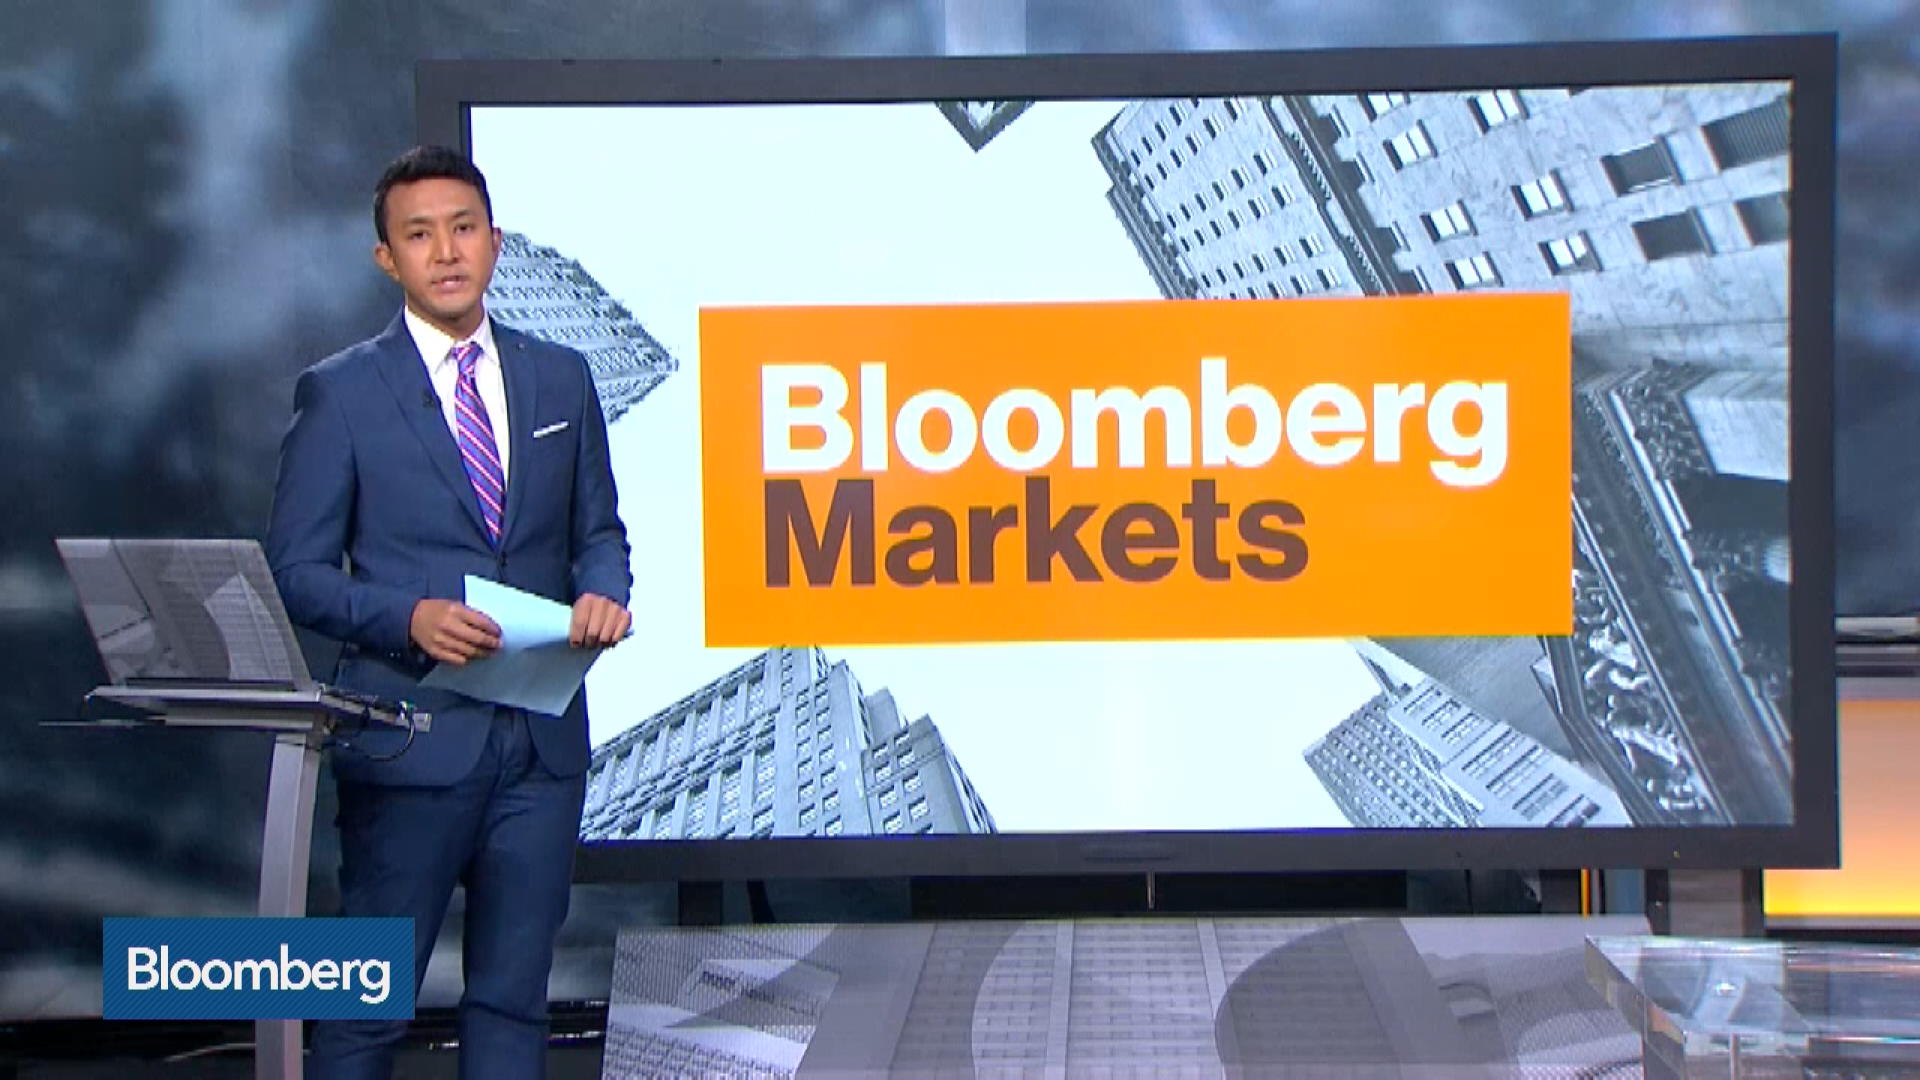 Bloomberg Markets - Bloomberg